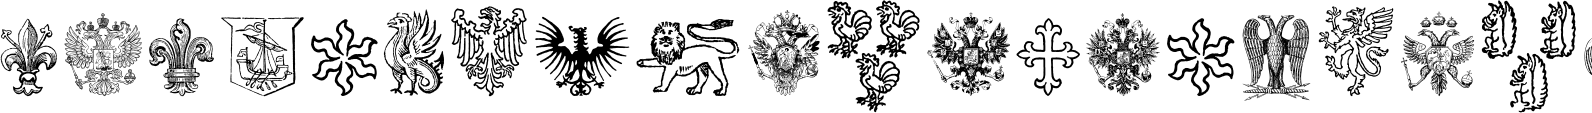 Heraldic Devices Premium Two Font